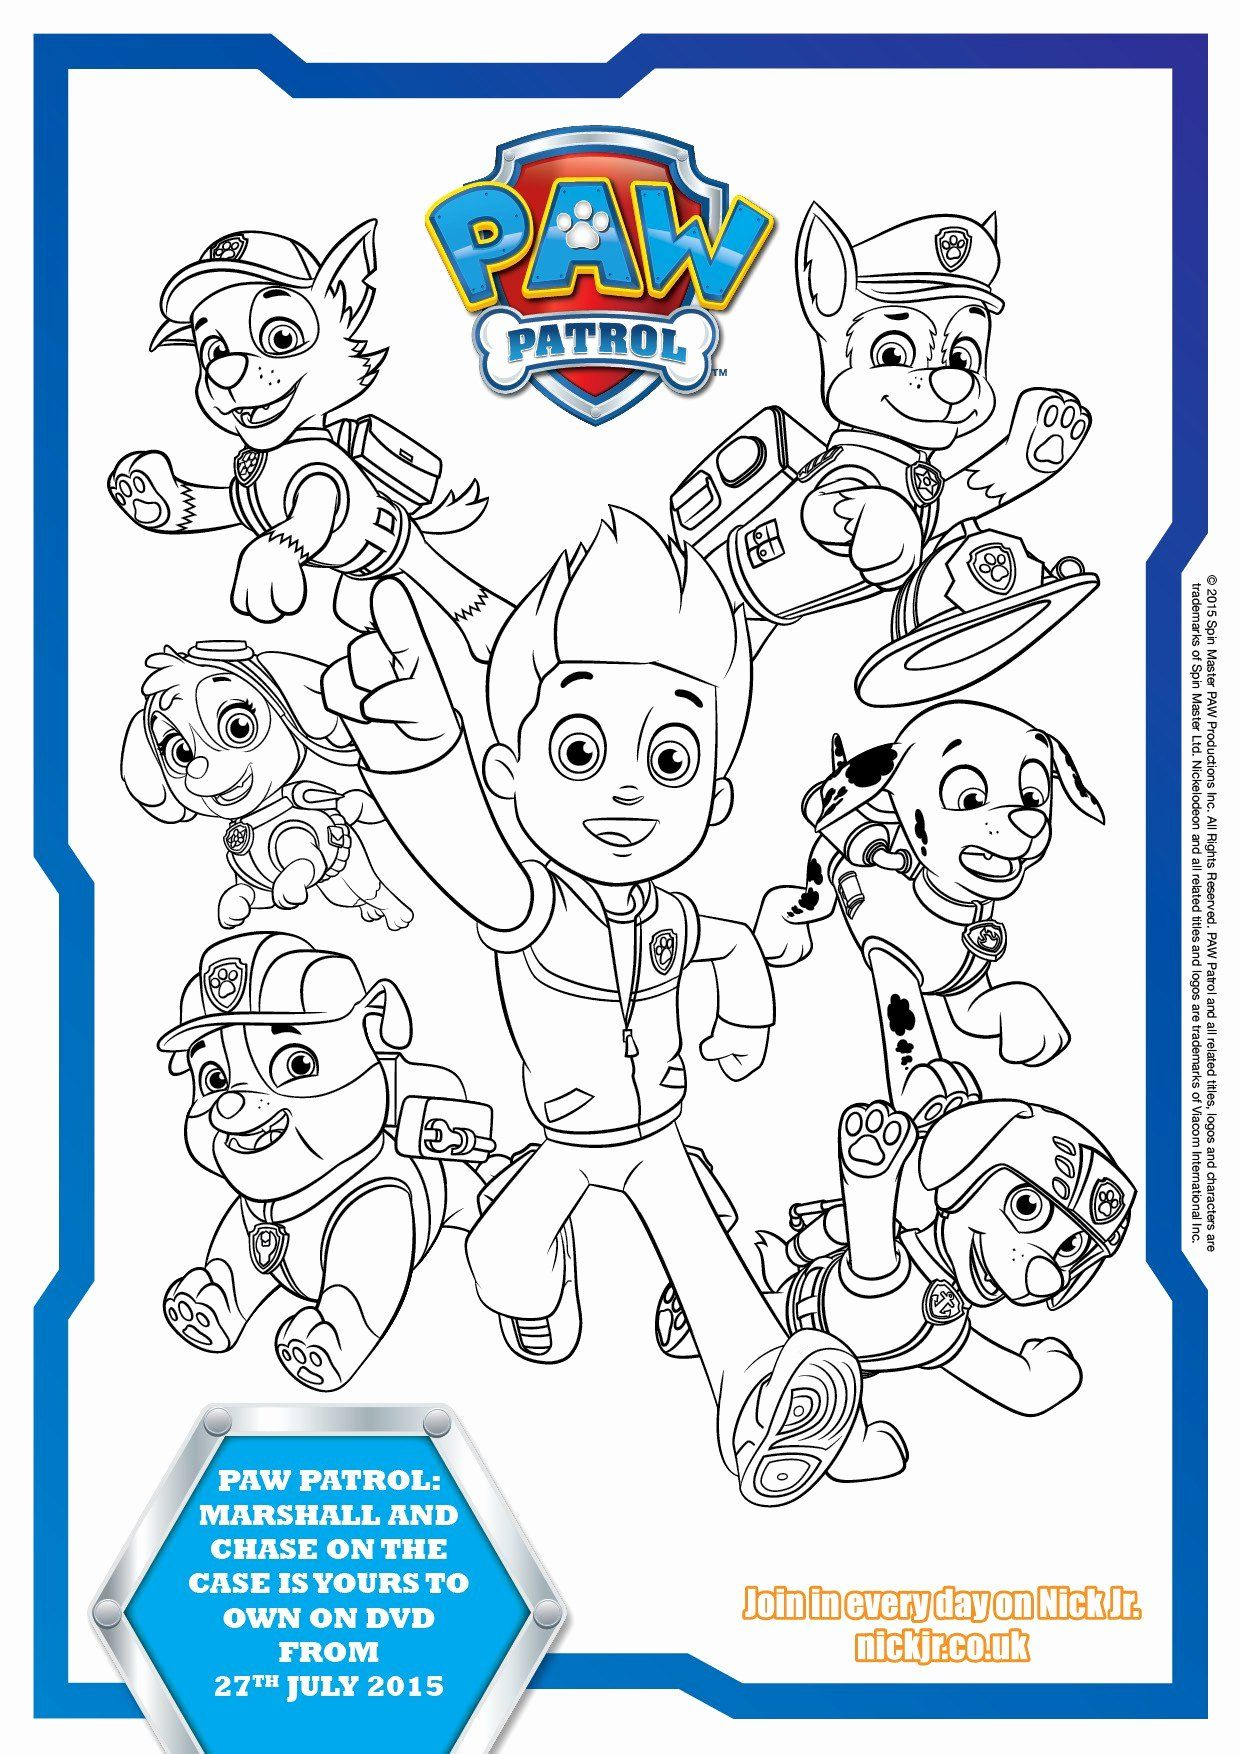 Paw Patrol Printable Coloring Pages Elegant Paw Patrol Colouring Pages And Activity Sheets Paw Patrol Coloring Paw Patrol Coloring Pages Paw Patrol Printables [ 1754 x 1240 Pixel ]